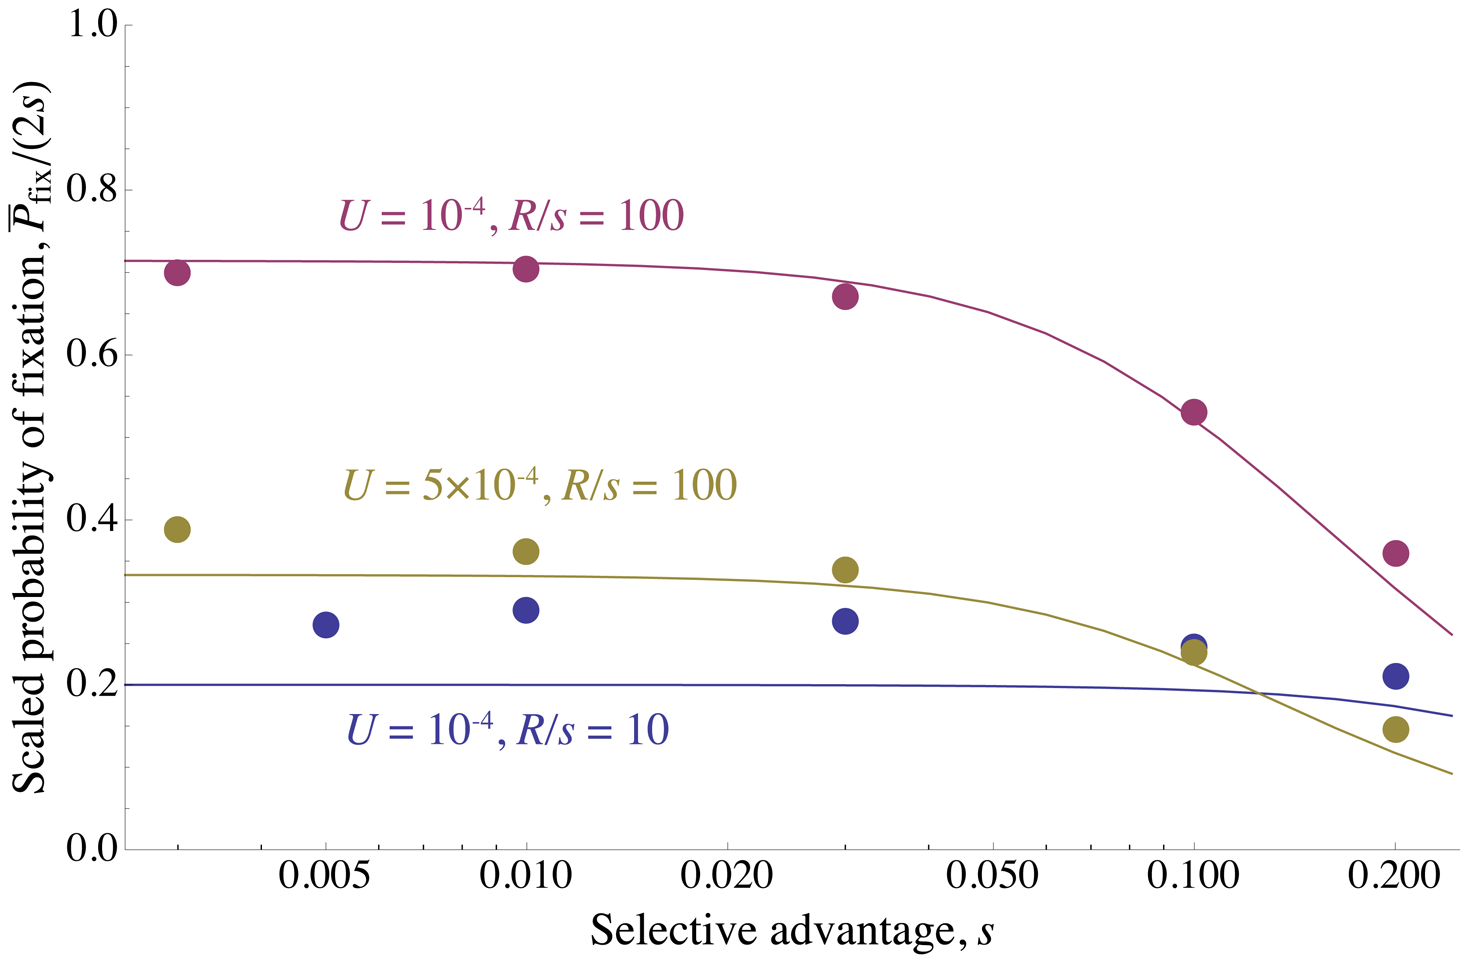 Reduction in fixation probability only depends on baseline density of sweeps.